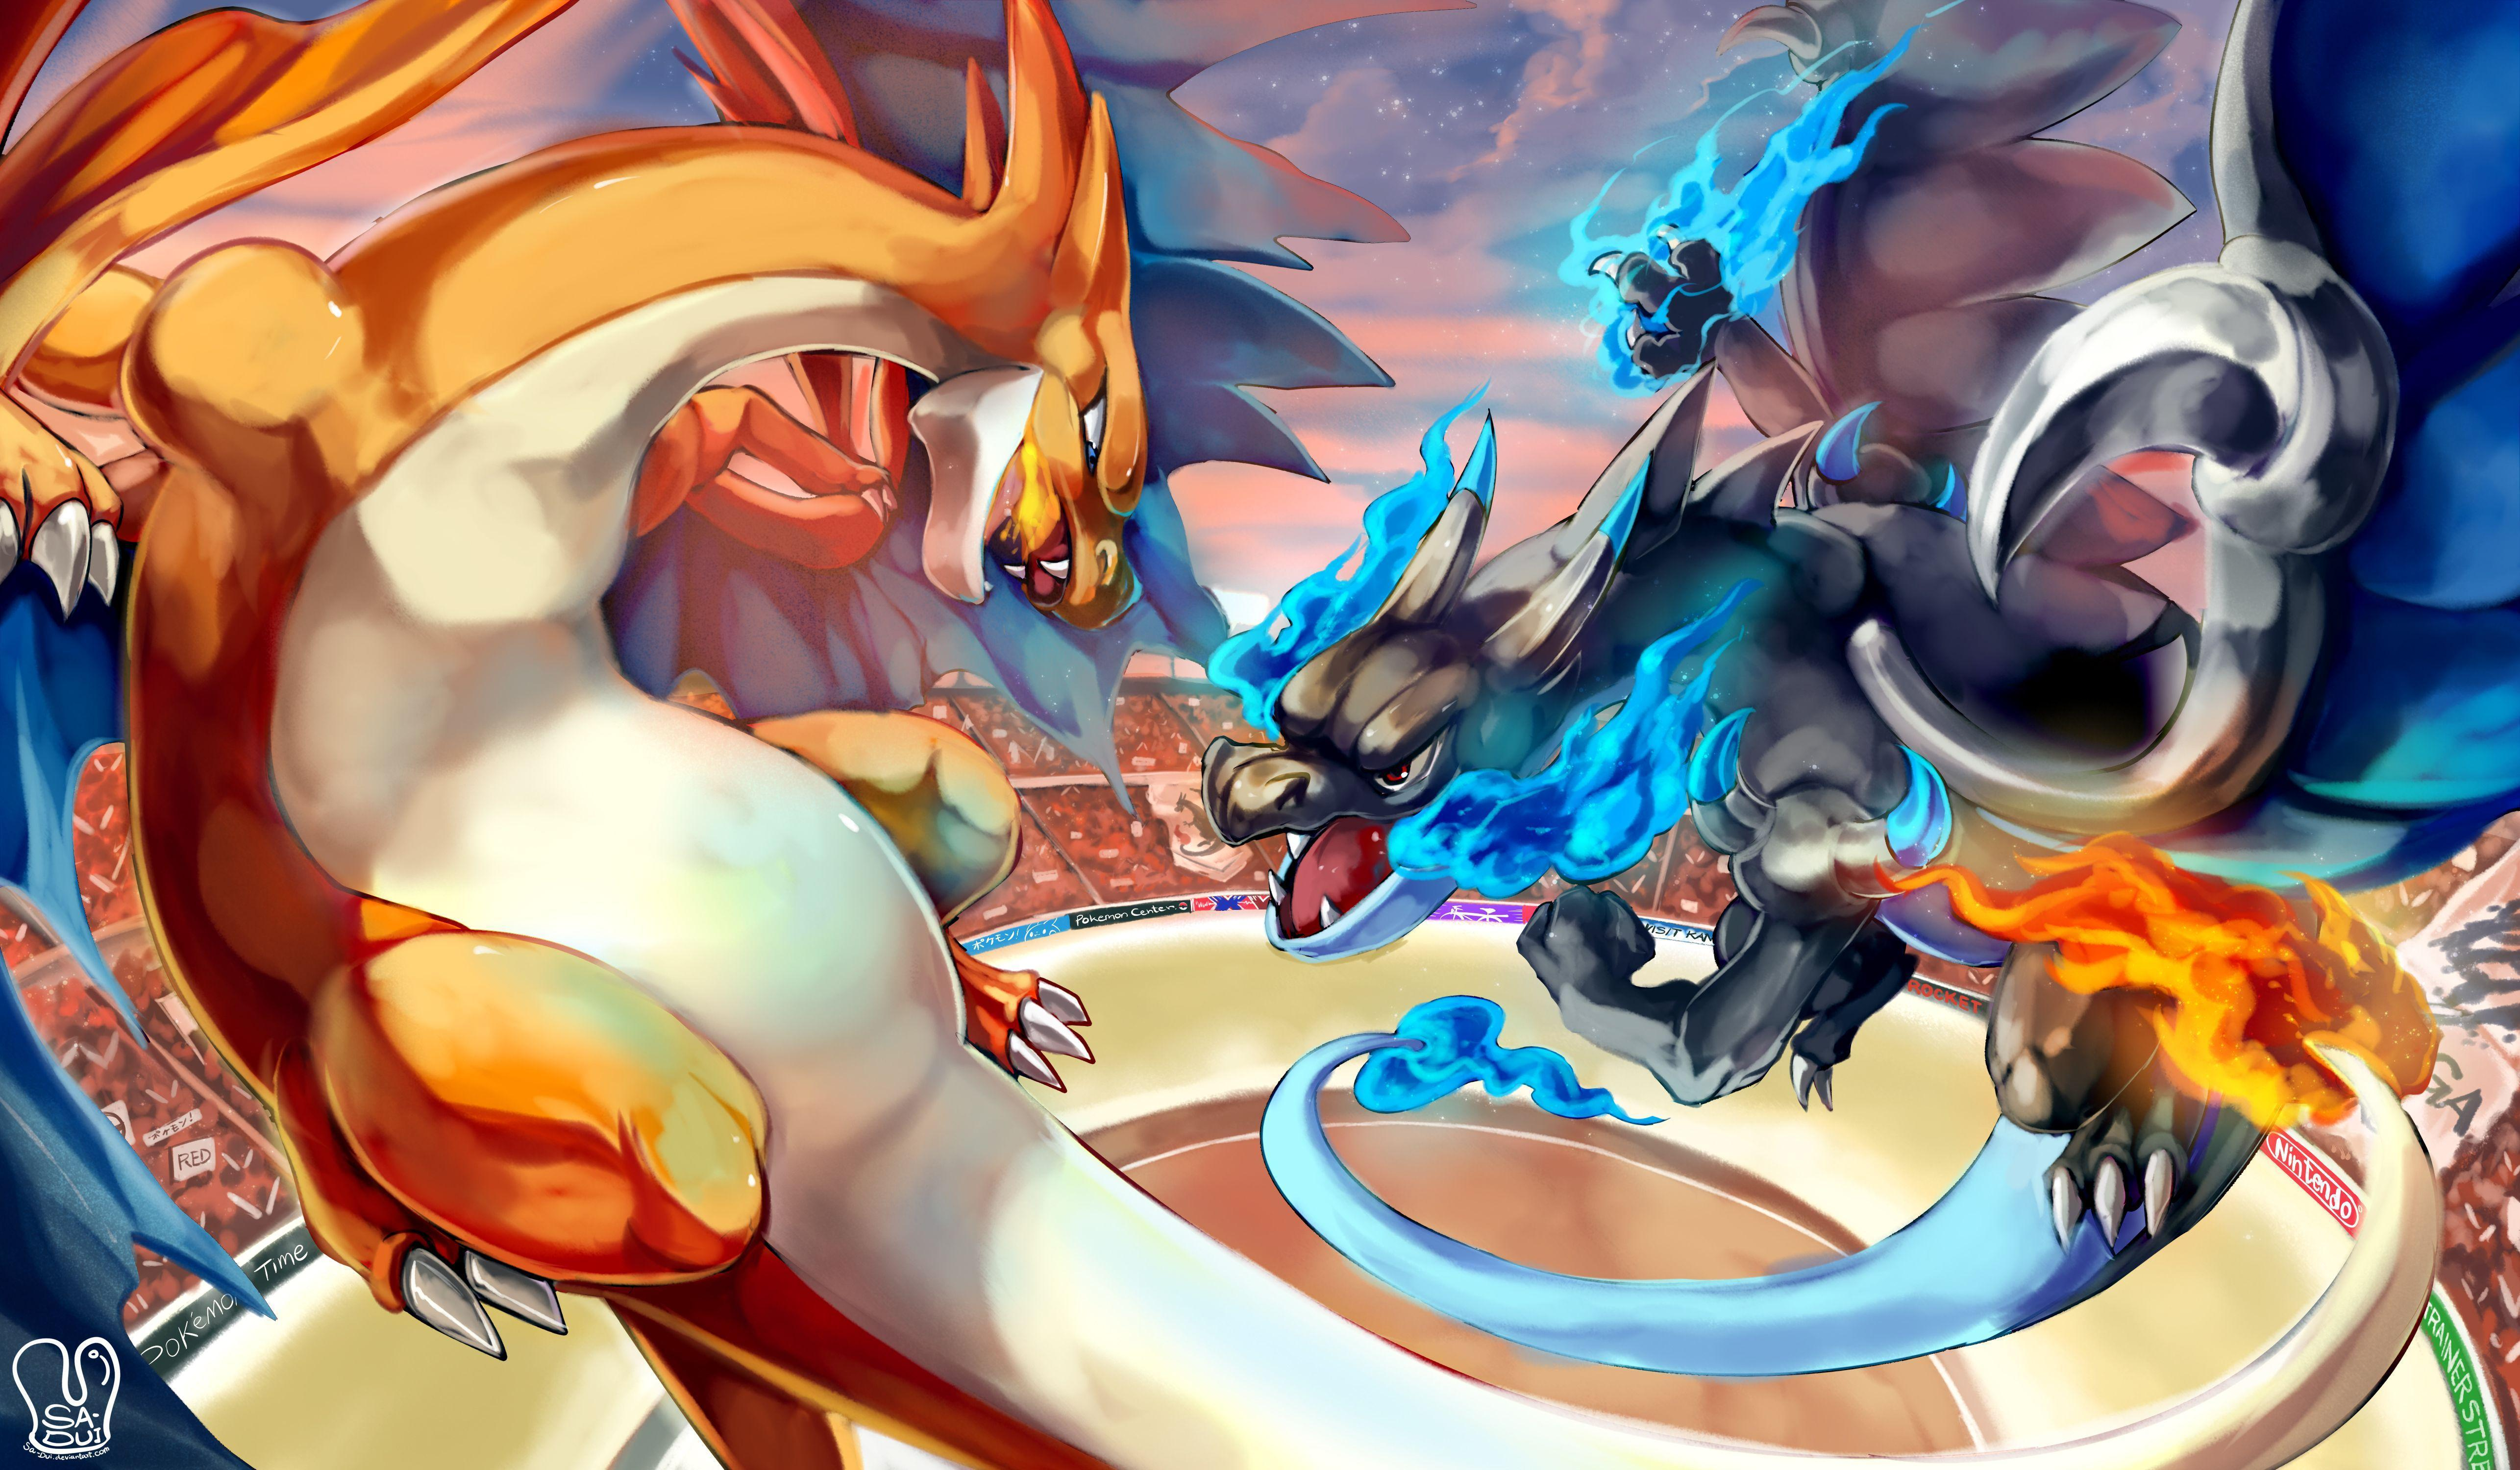 4 Mega Charizard Y (Pokémon) HD Wallpapers | Background Images ...